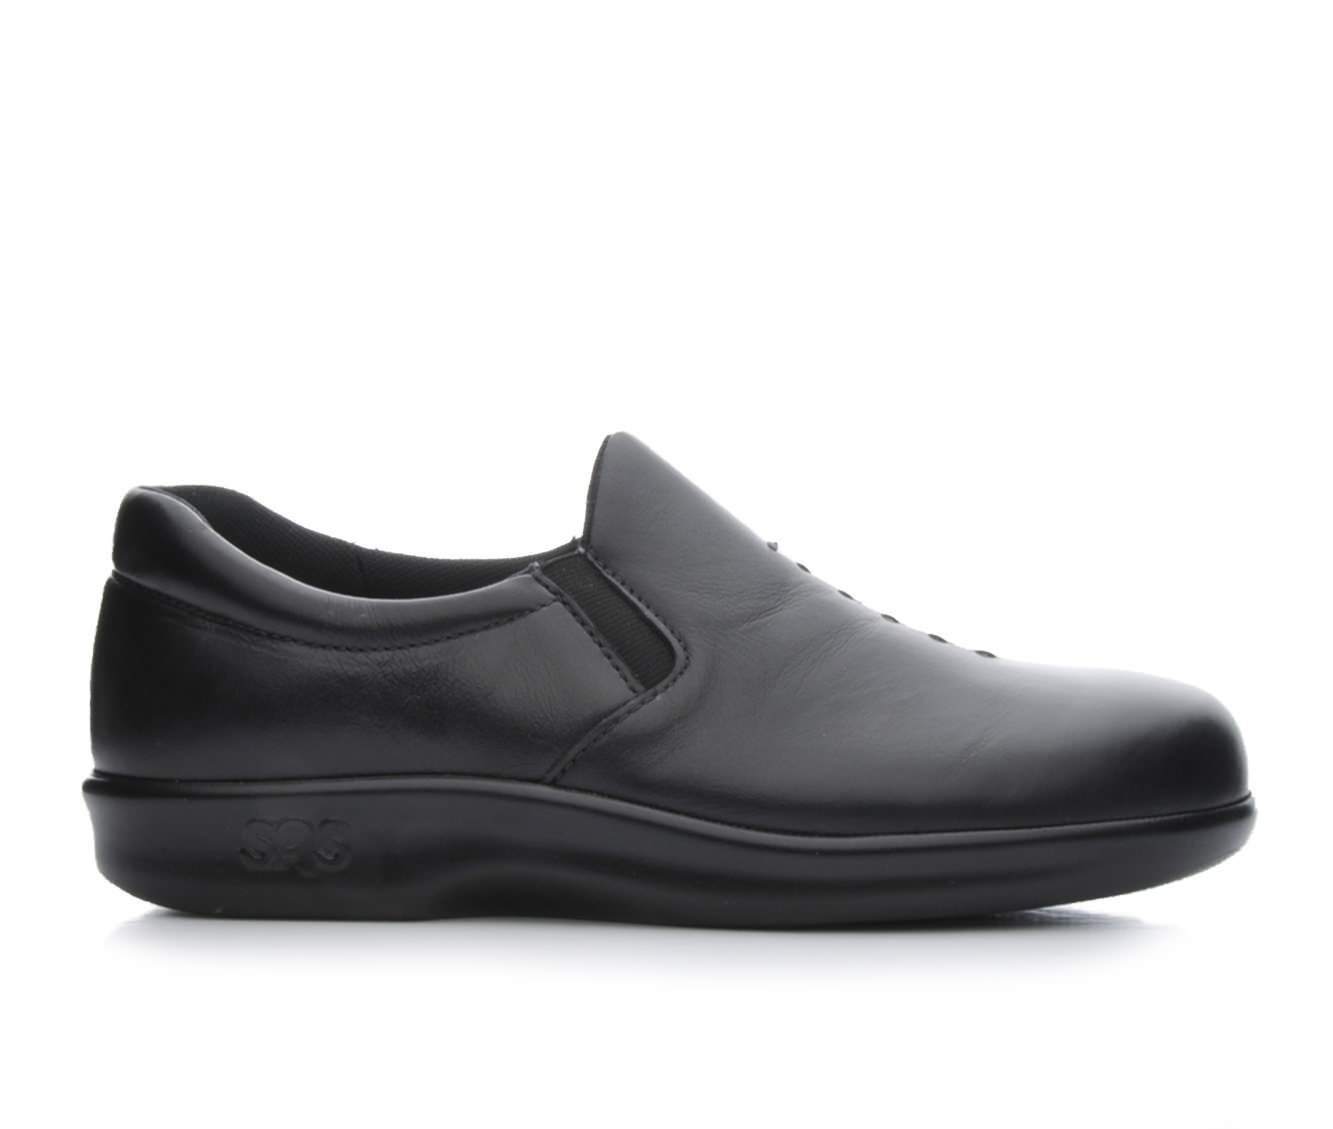 Women's Sas Viva Comfort Shoes Black